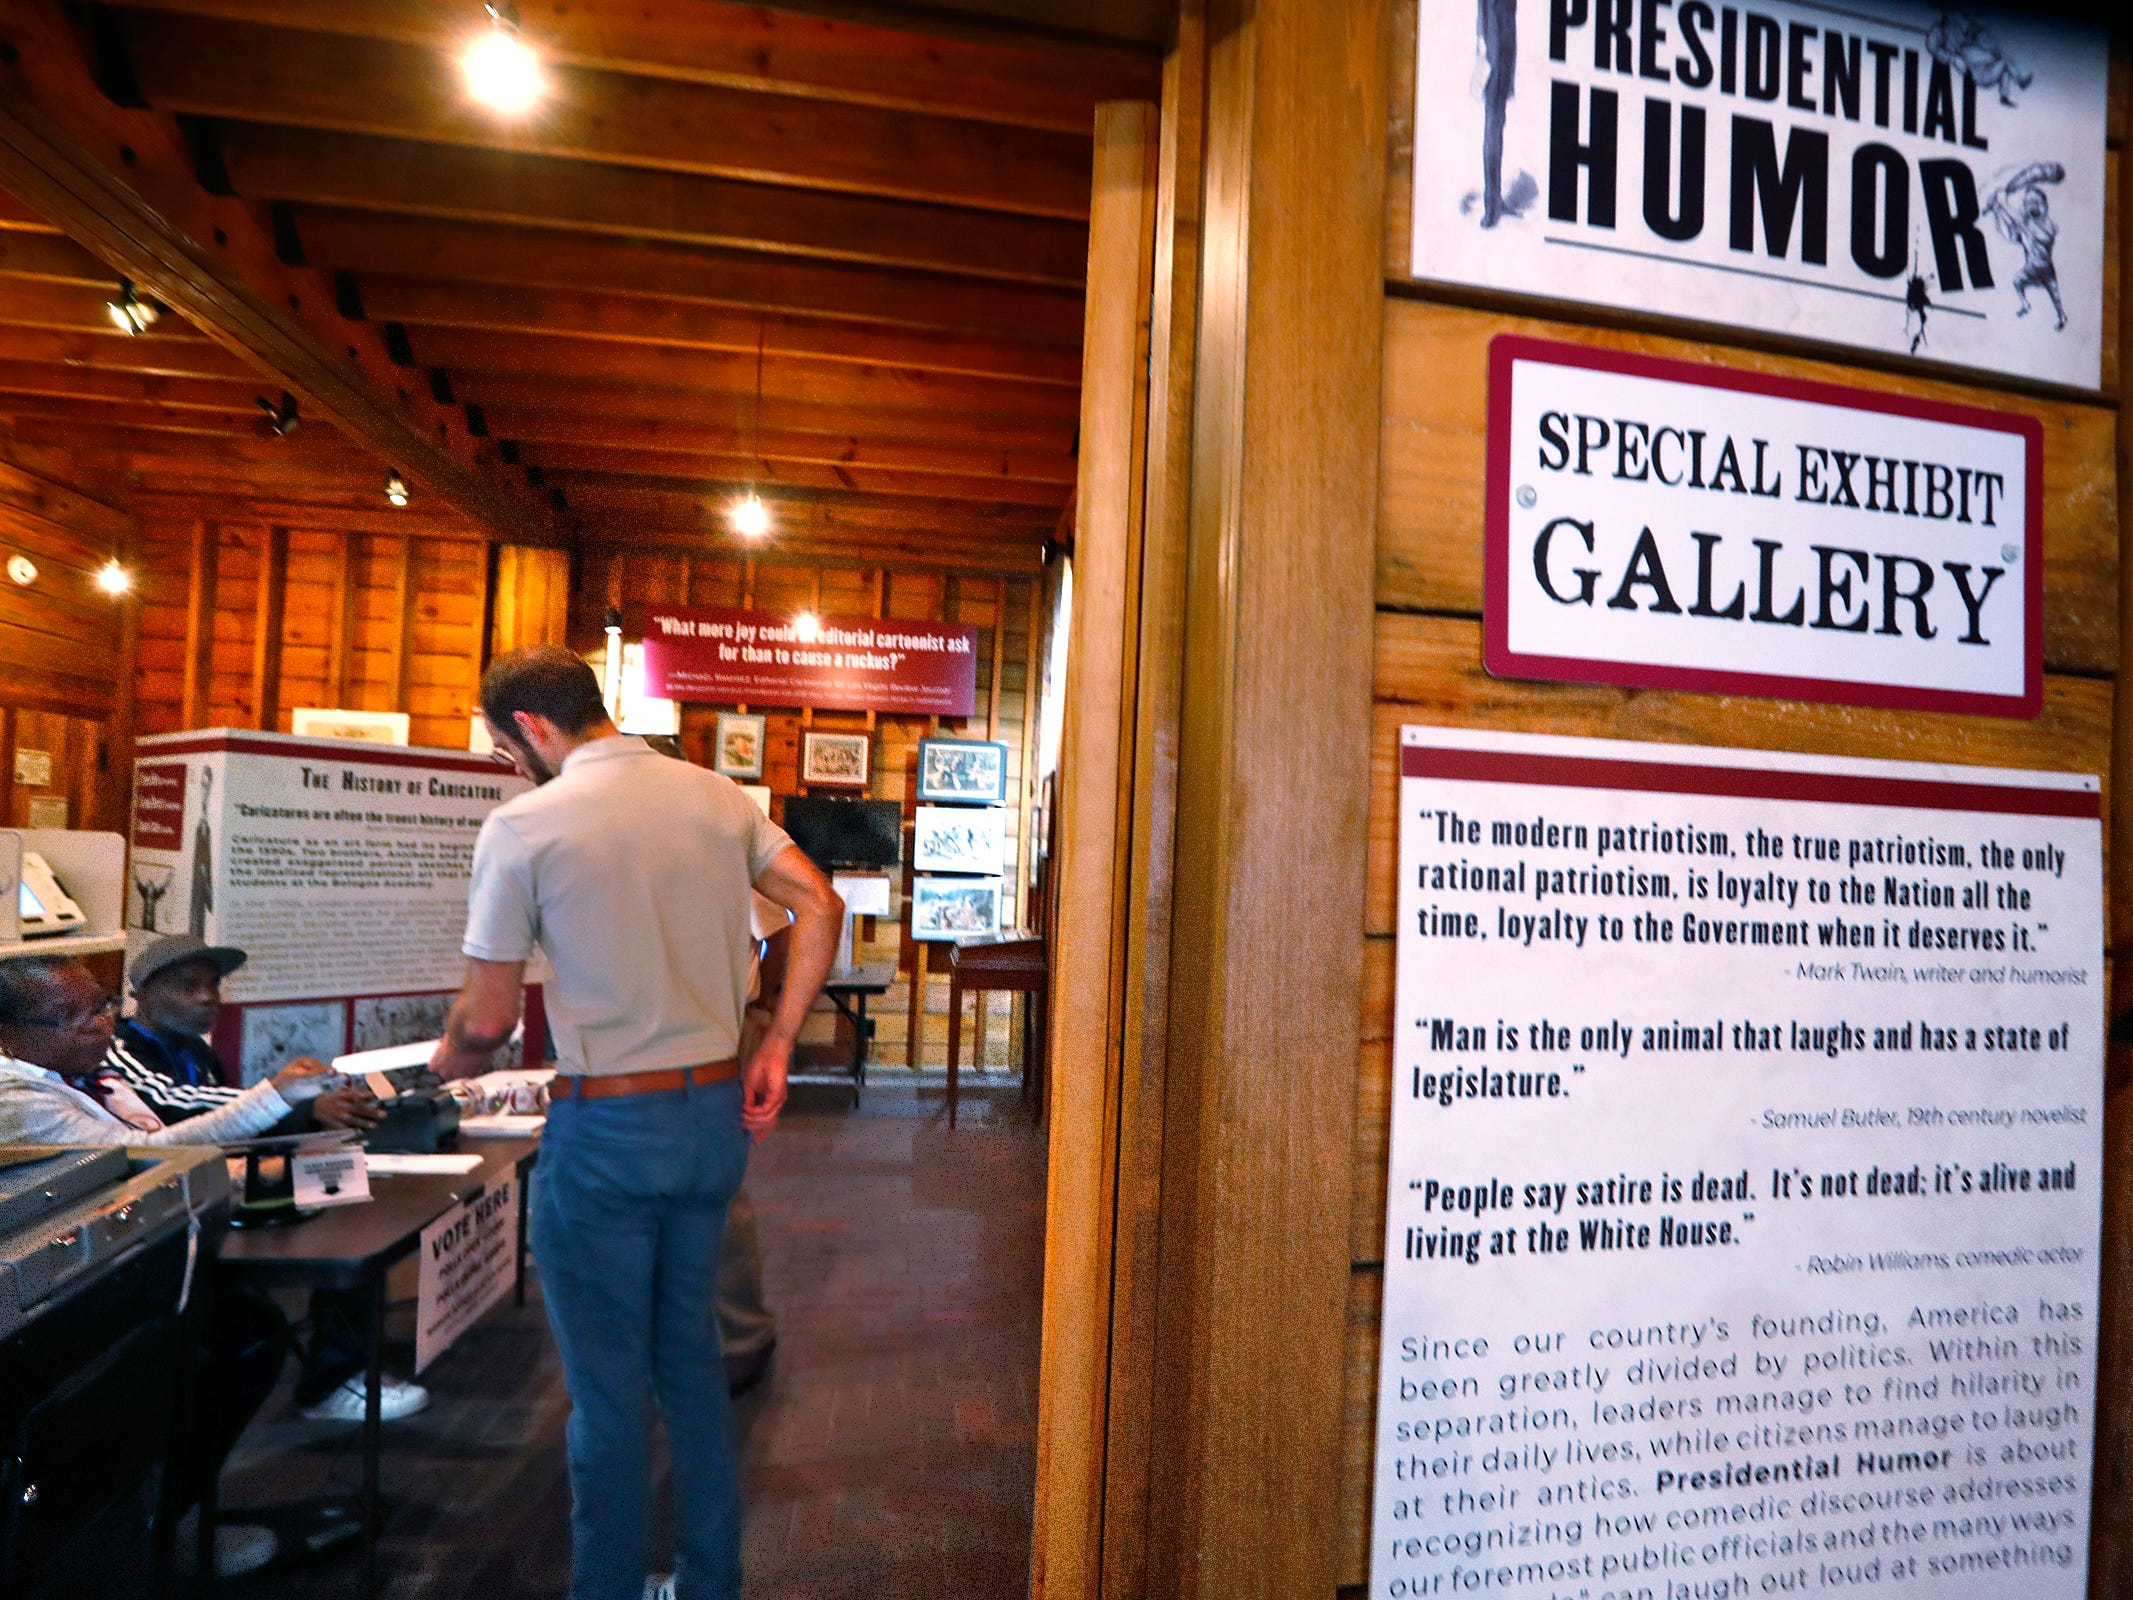 People vote at the President Benjamin Harrison Presidential Site voting center, Tuesday, May 7, 2019.  As a center, anyone who lives in Marion County can vote at this location.